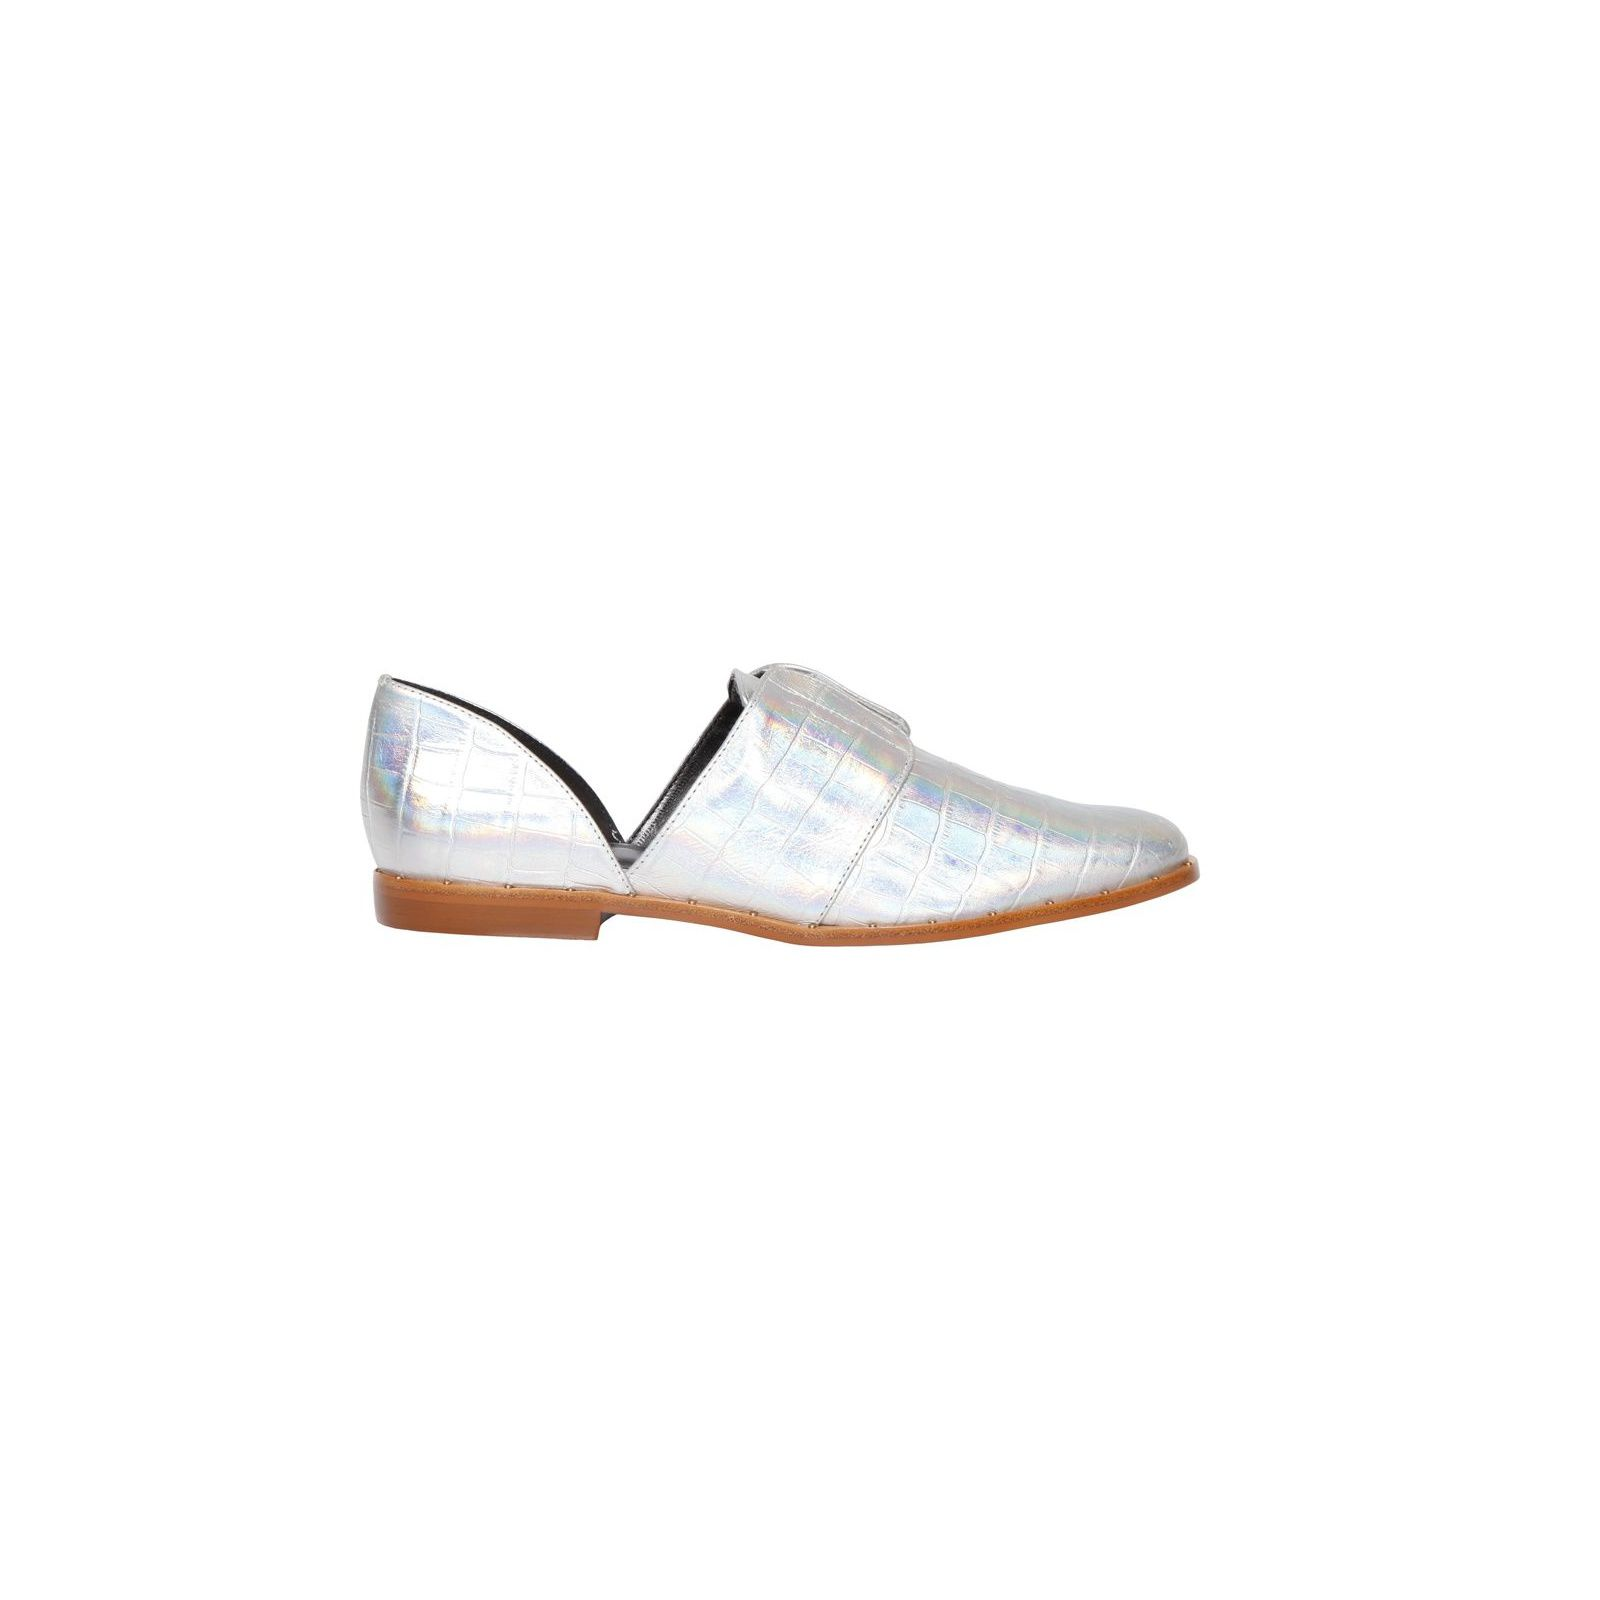 Oxford Eloise Croco Holographic - Prata